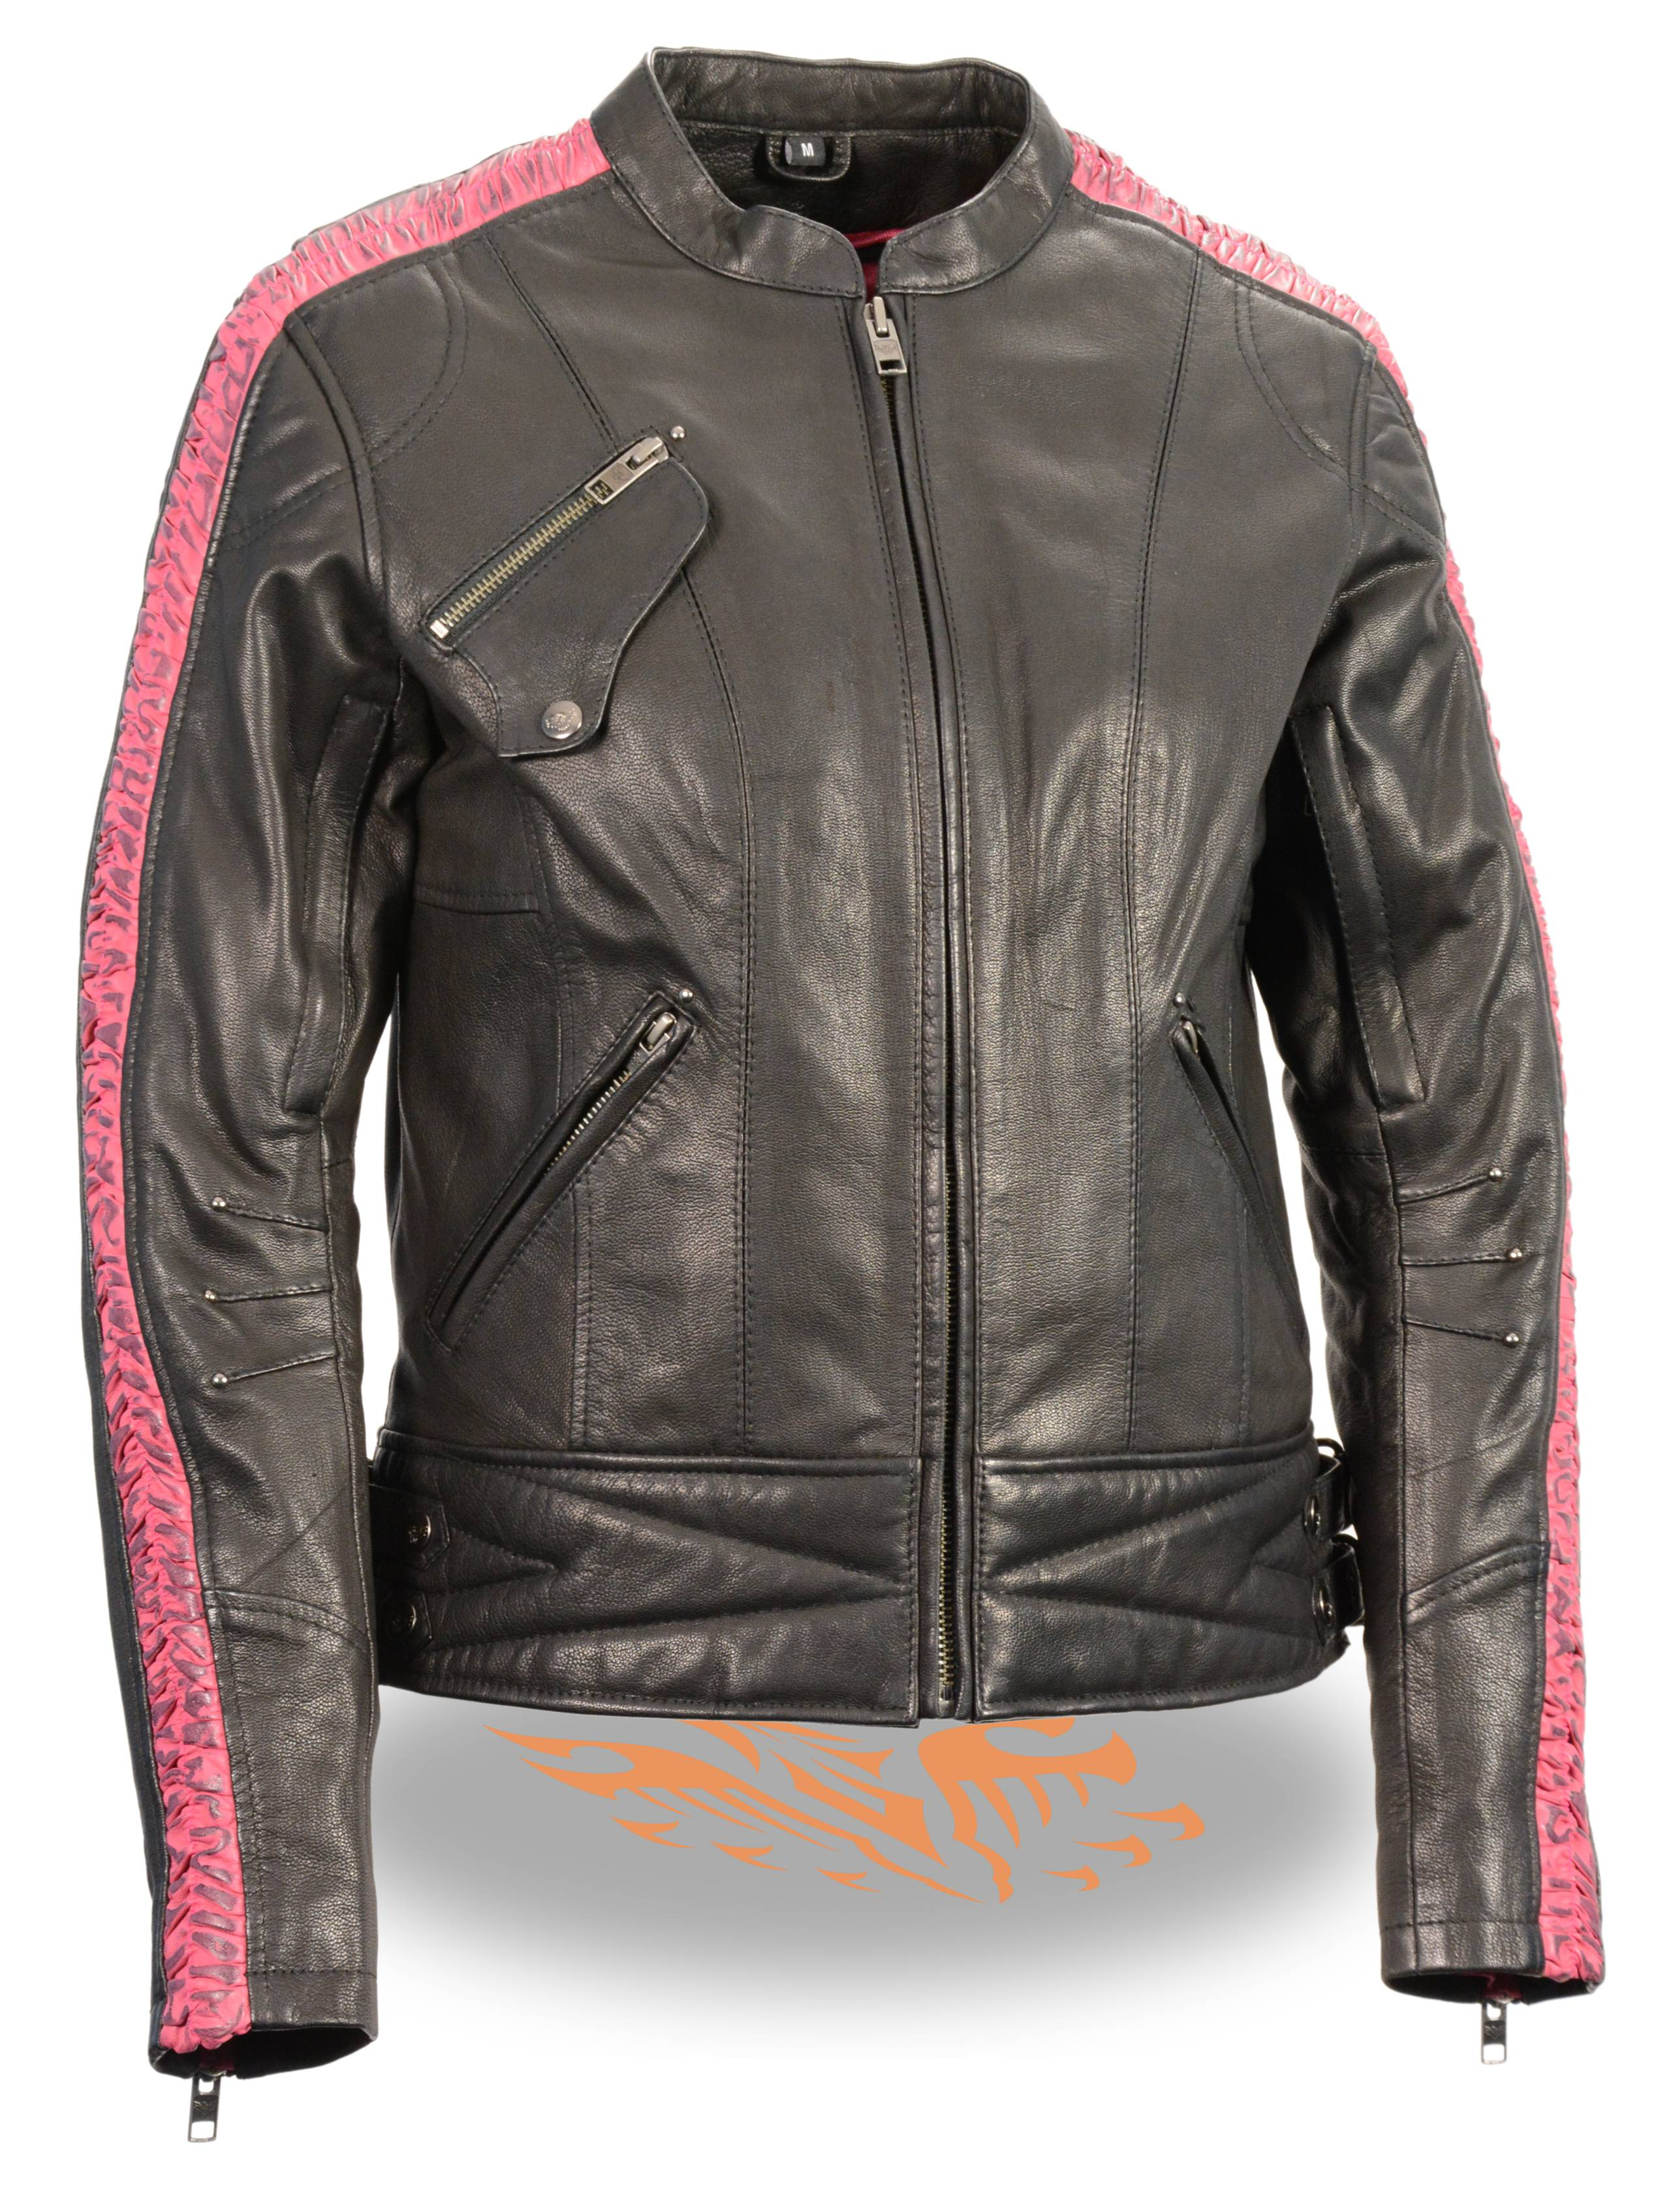 Ladies Black Lightweight Goatskin Leather Biker Jacket w Hot Pink ...